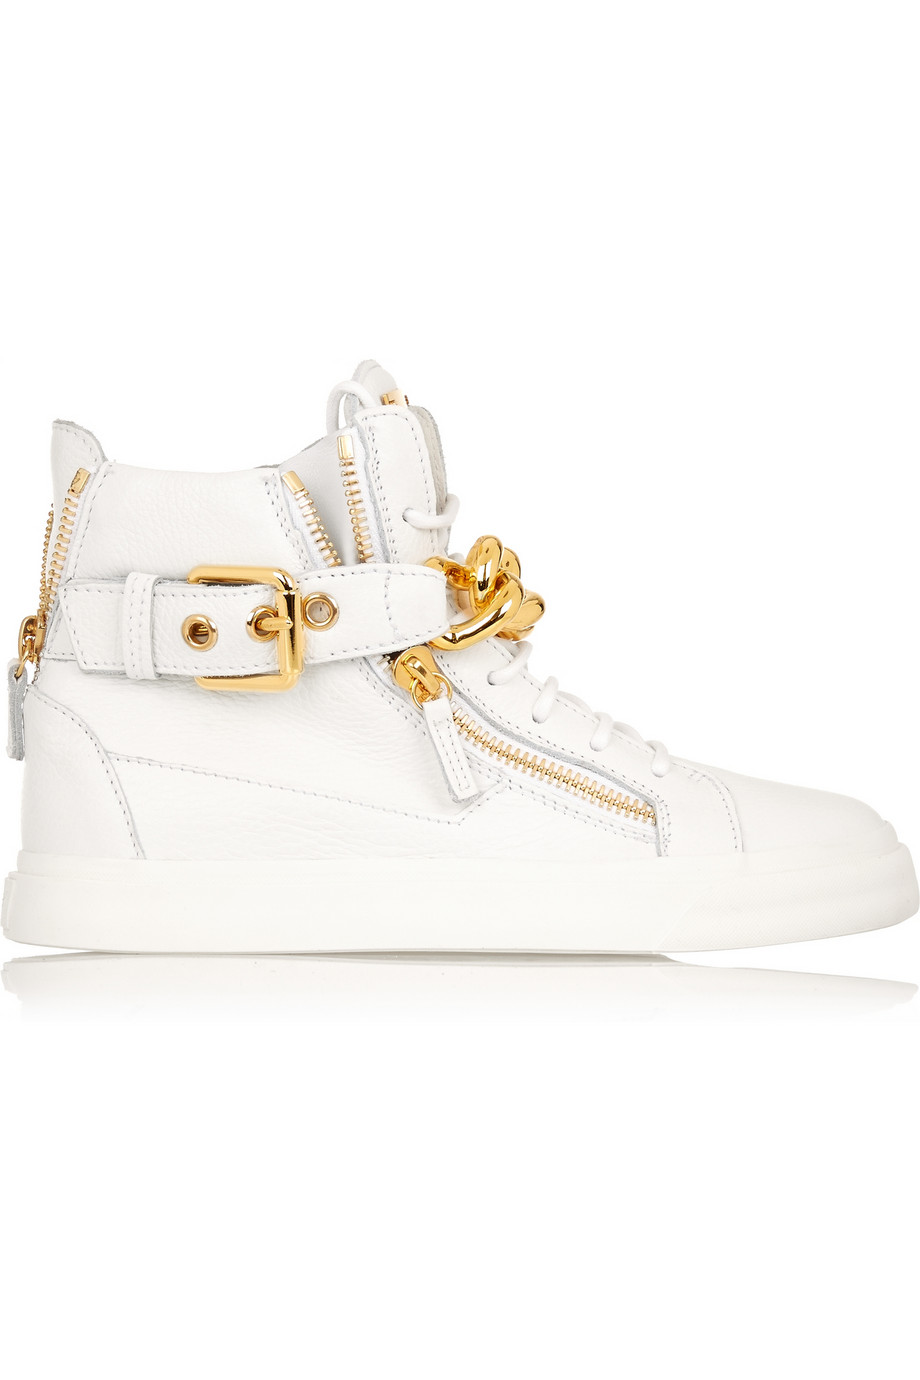 Giuseppe Zanotti Chain-embellished leather sneakers – 30% at THE OUTNET.COM